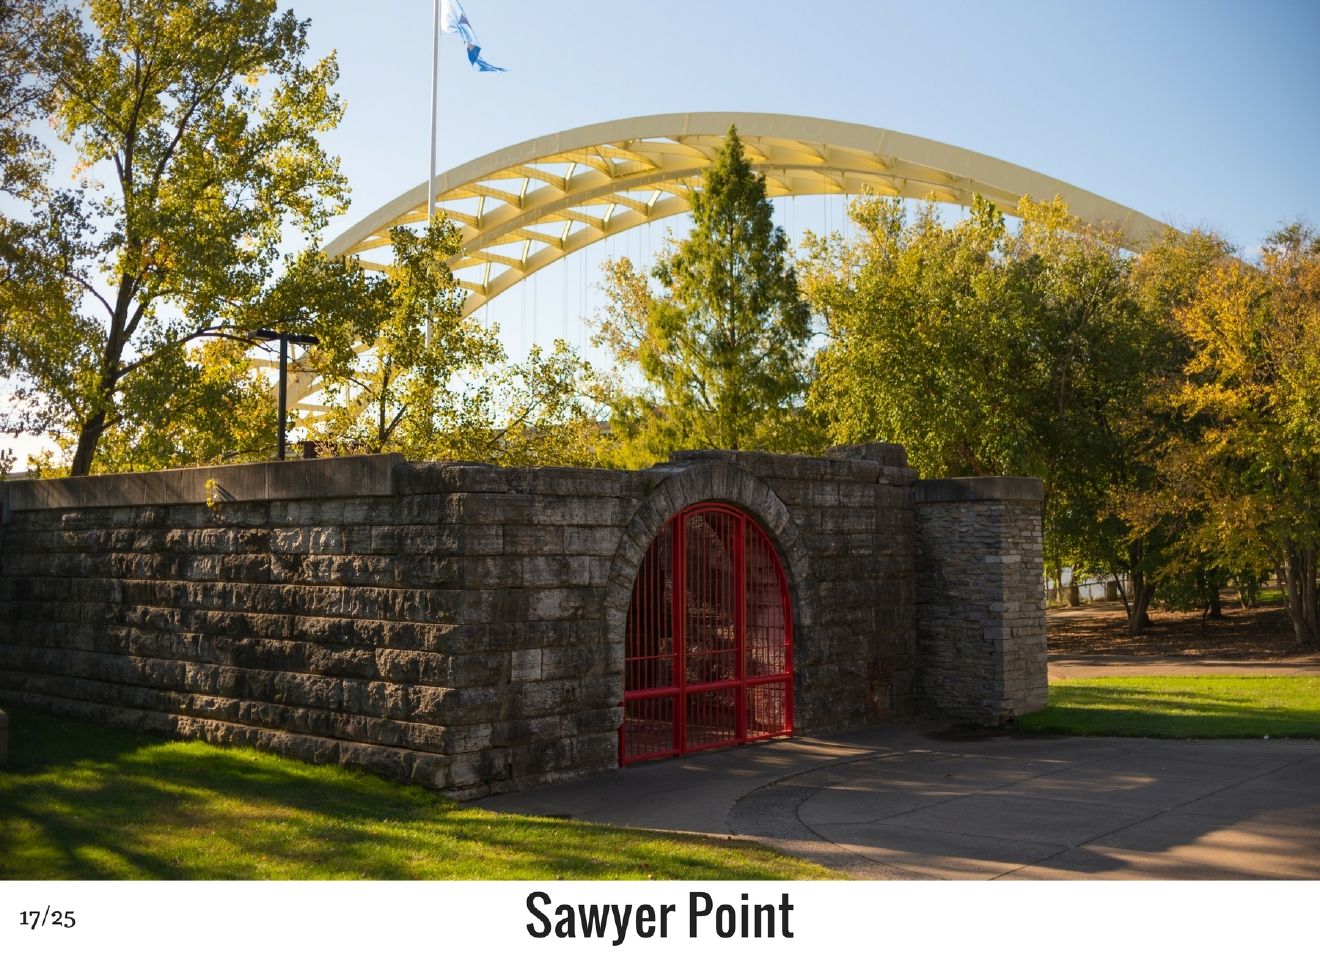 WHAT: Sawyer Point / WHERE: 705 E Pete Rose Way, Downtown Cincinnati 45202 / Image: Phil Armstrong, Cincinnati Refined / Published: 10.27.16